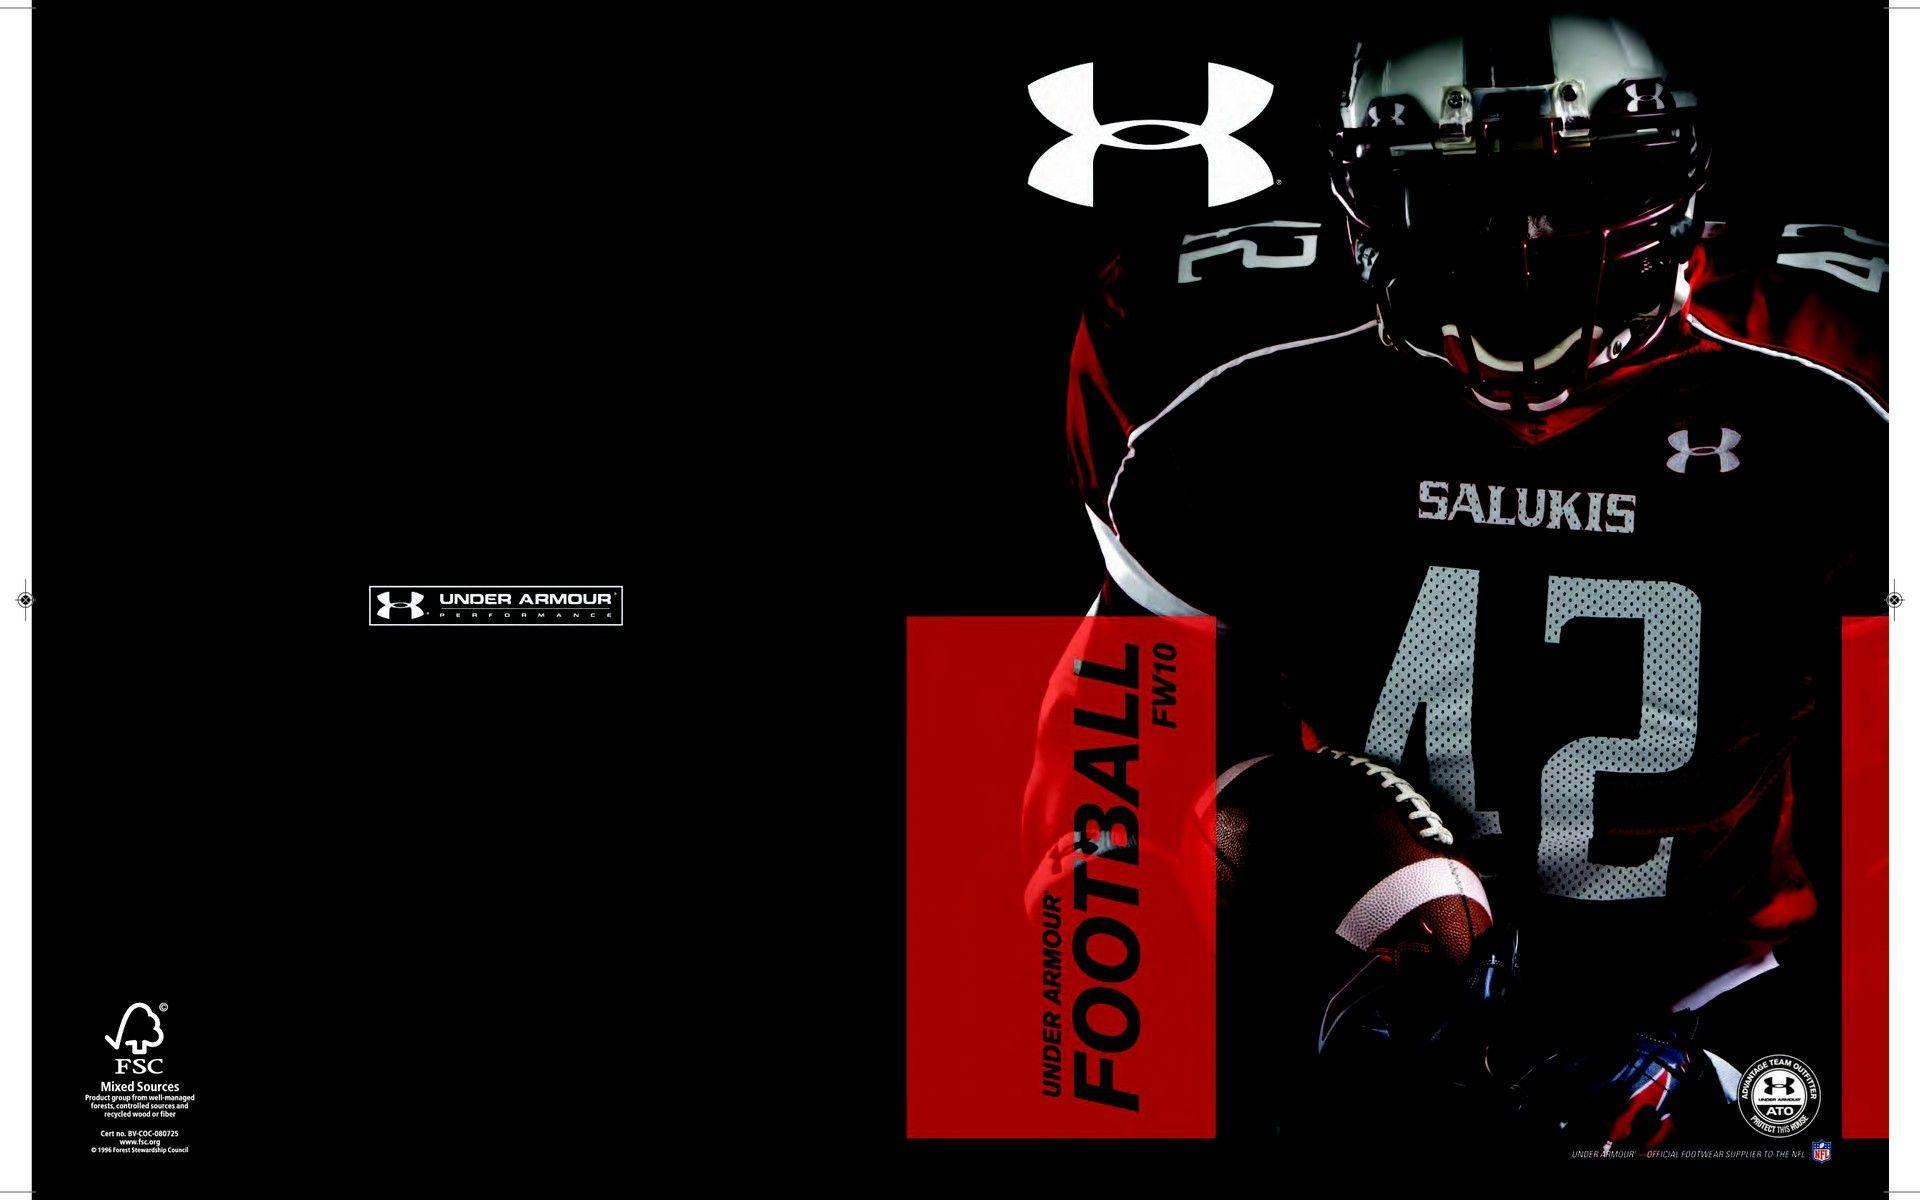 Image For > Under Armour Wallpapers Hd